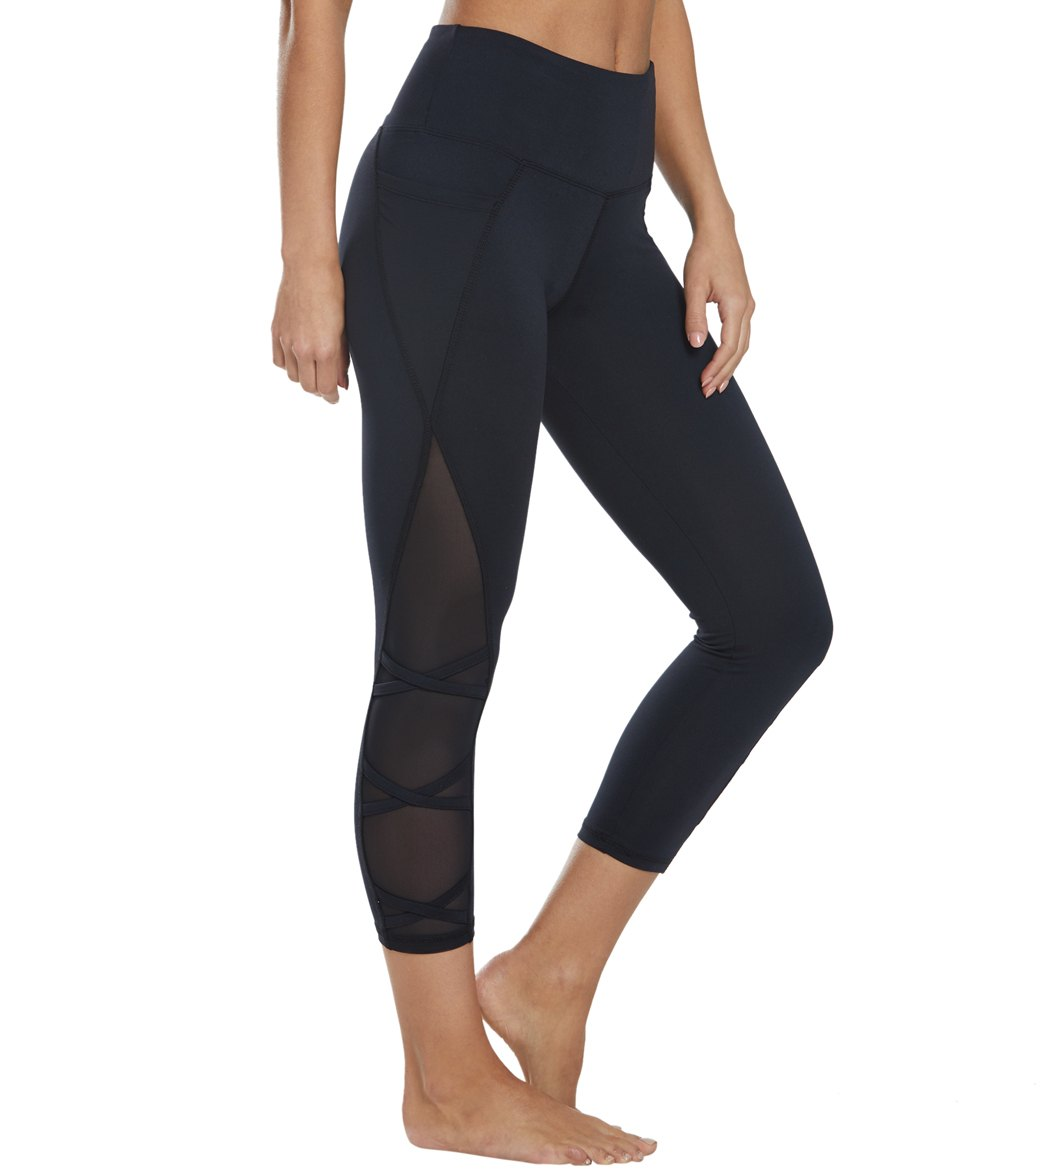 c3f3bde50742f2 Balance Collection Candace Yoga Capris